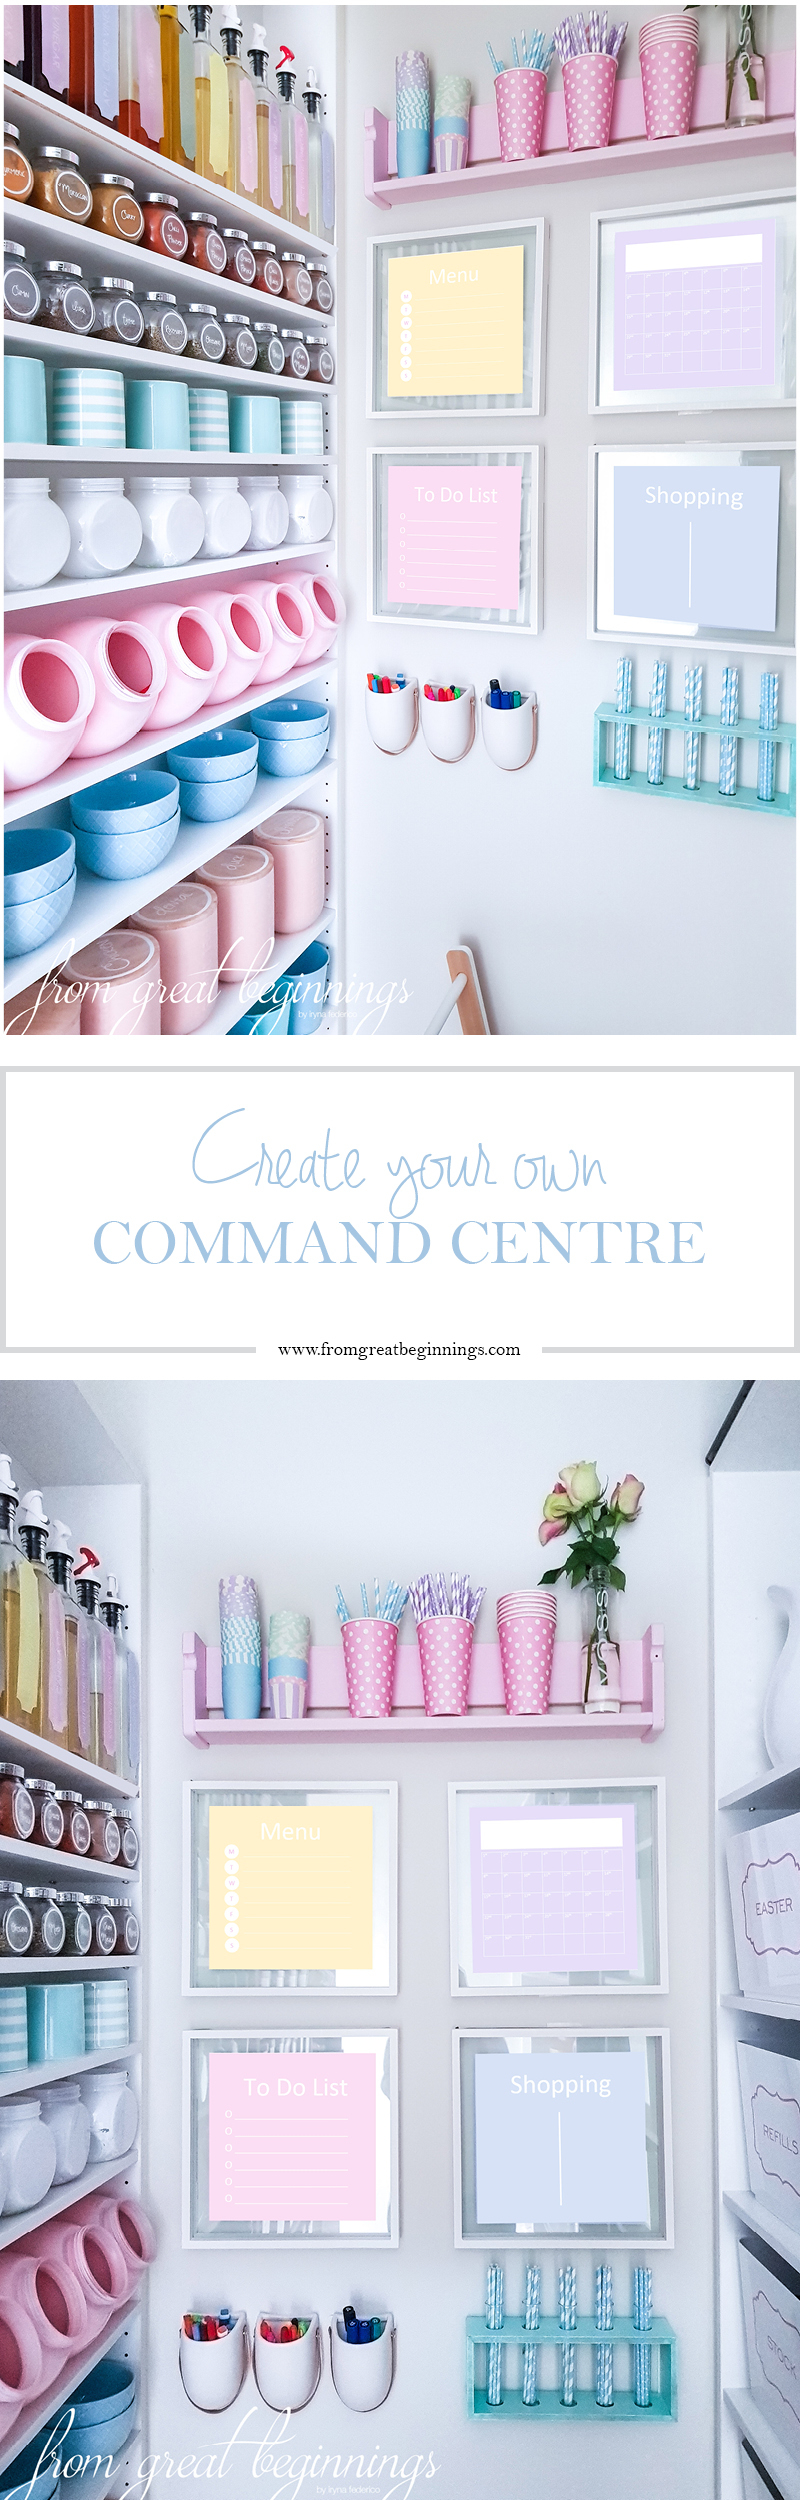 DIY Command Centre - www.fromgreatbeginnings.com